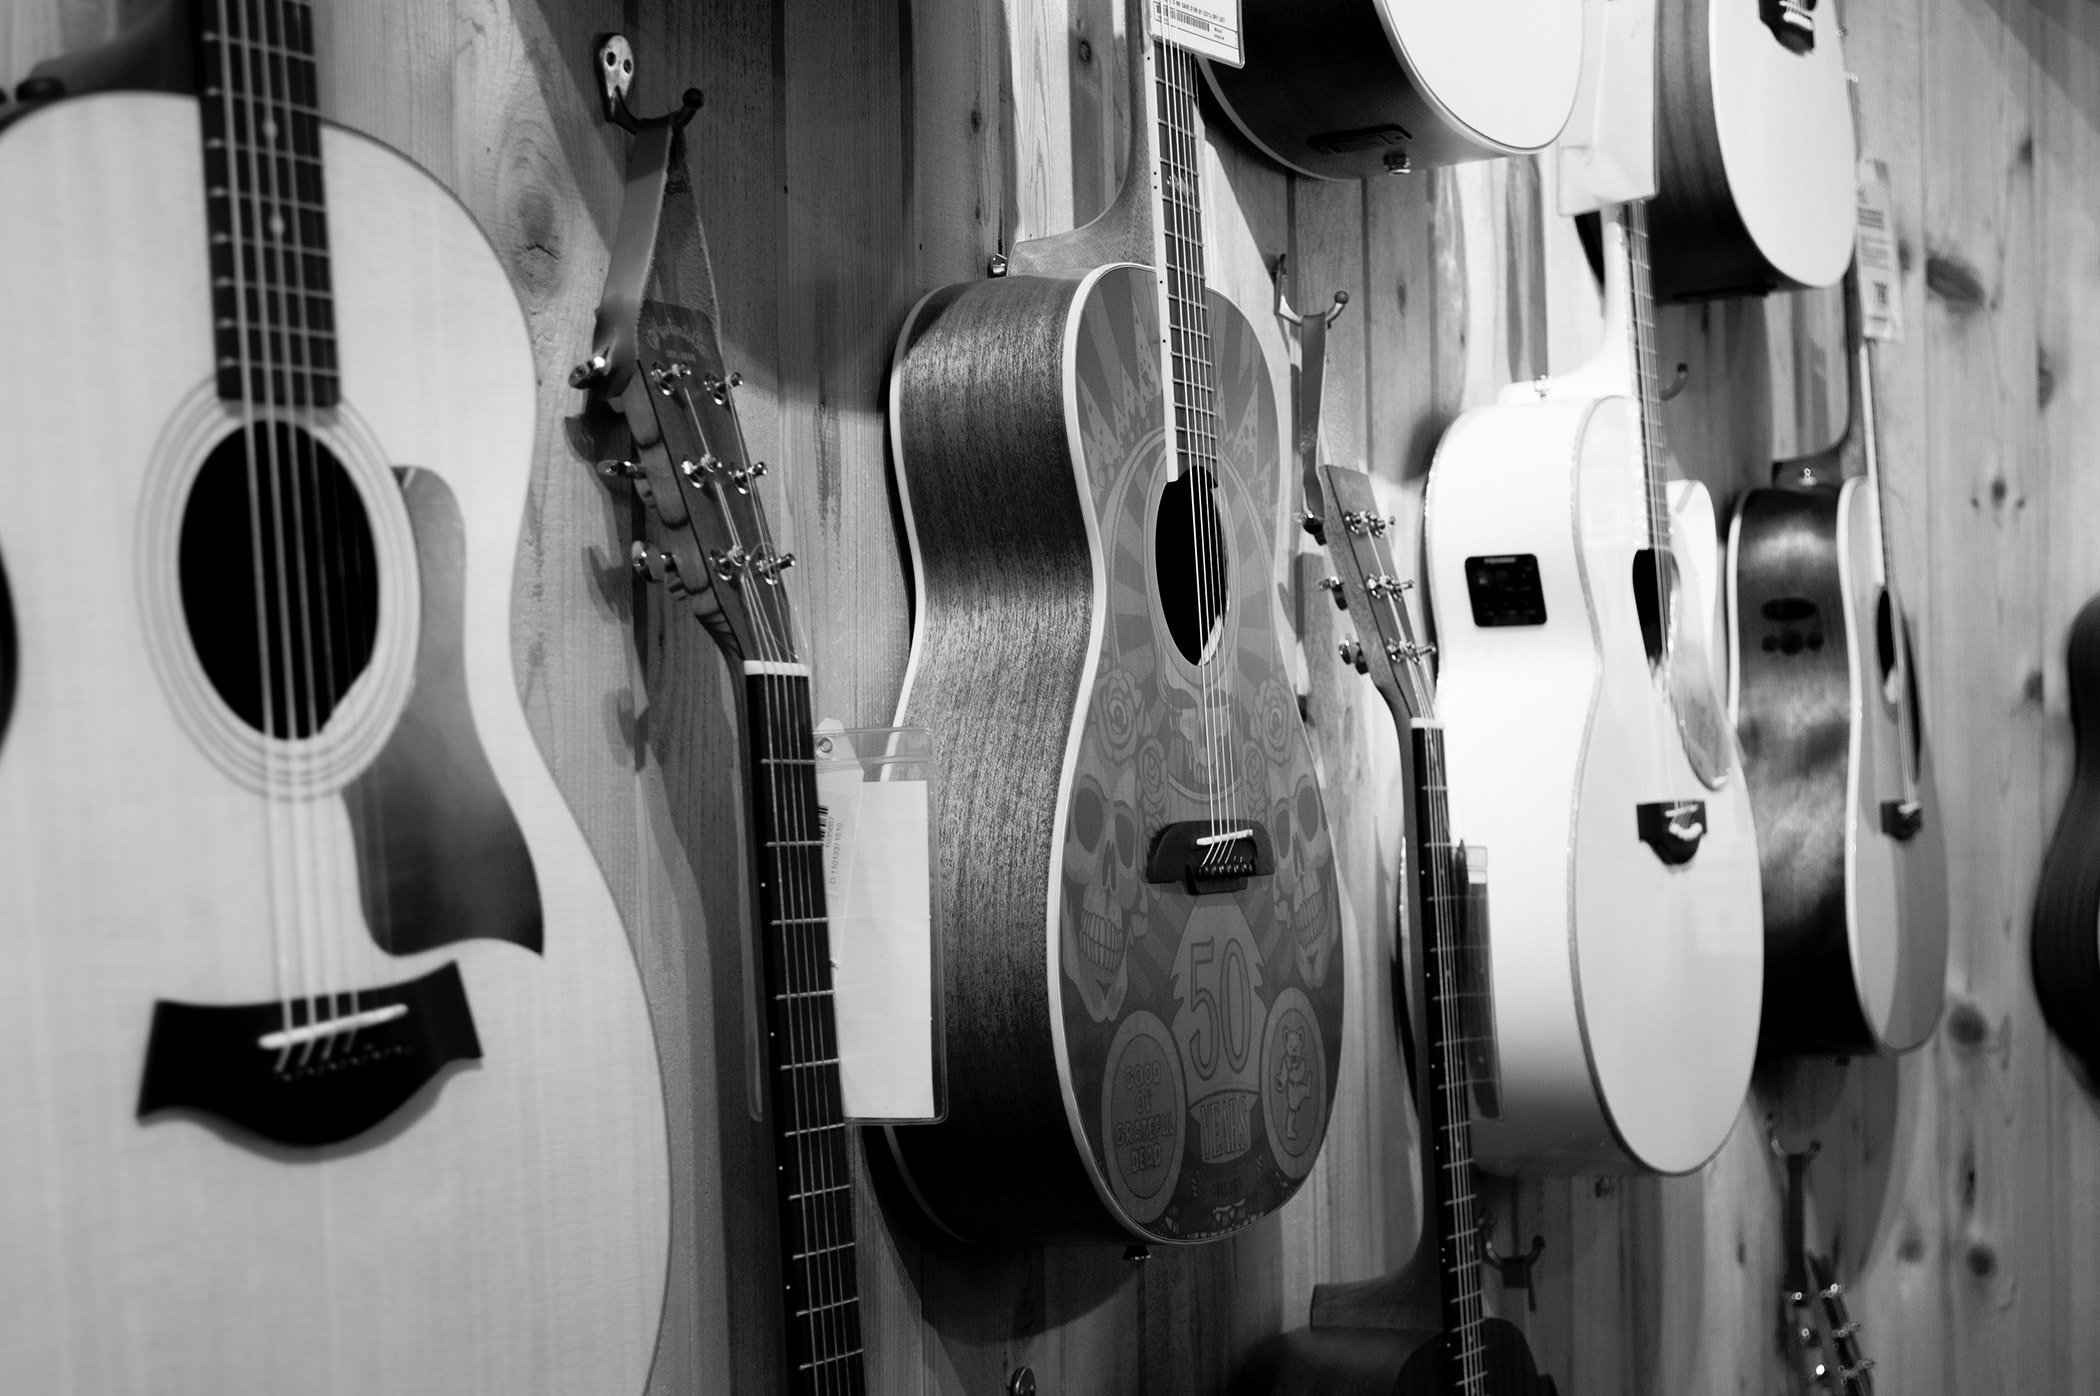 two grayscale acoustic guitars free stock photo. Black Bedroom Furniture Sets. Home Design Ideas